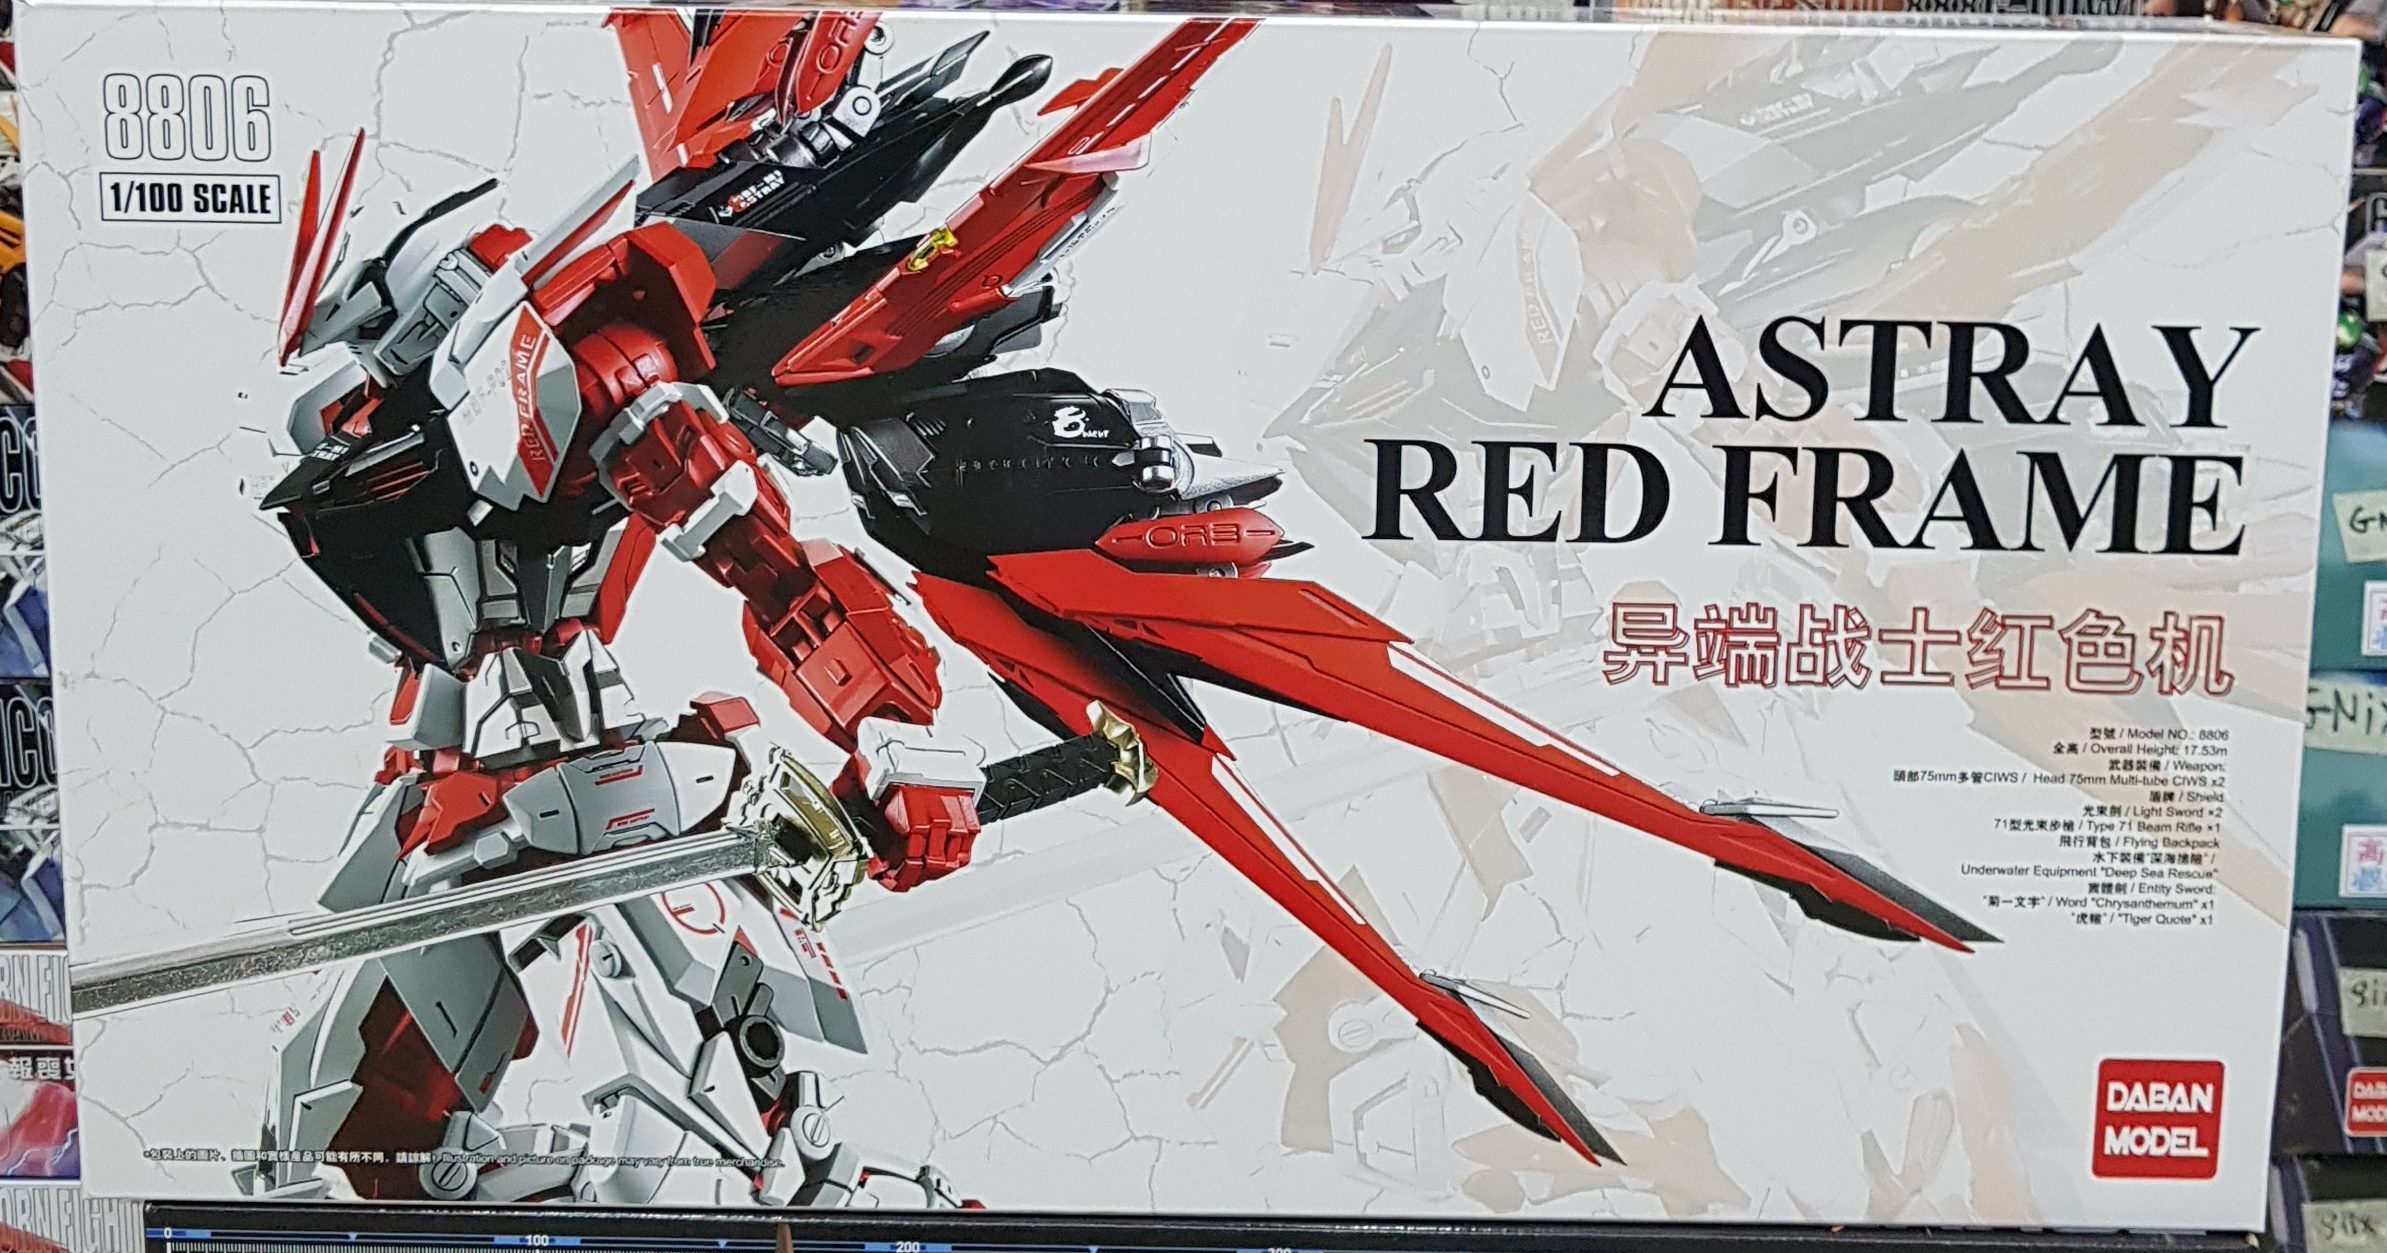 Astray Red Frame [Daban] 8806